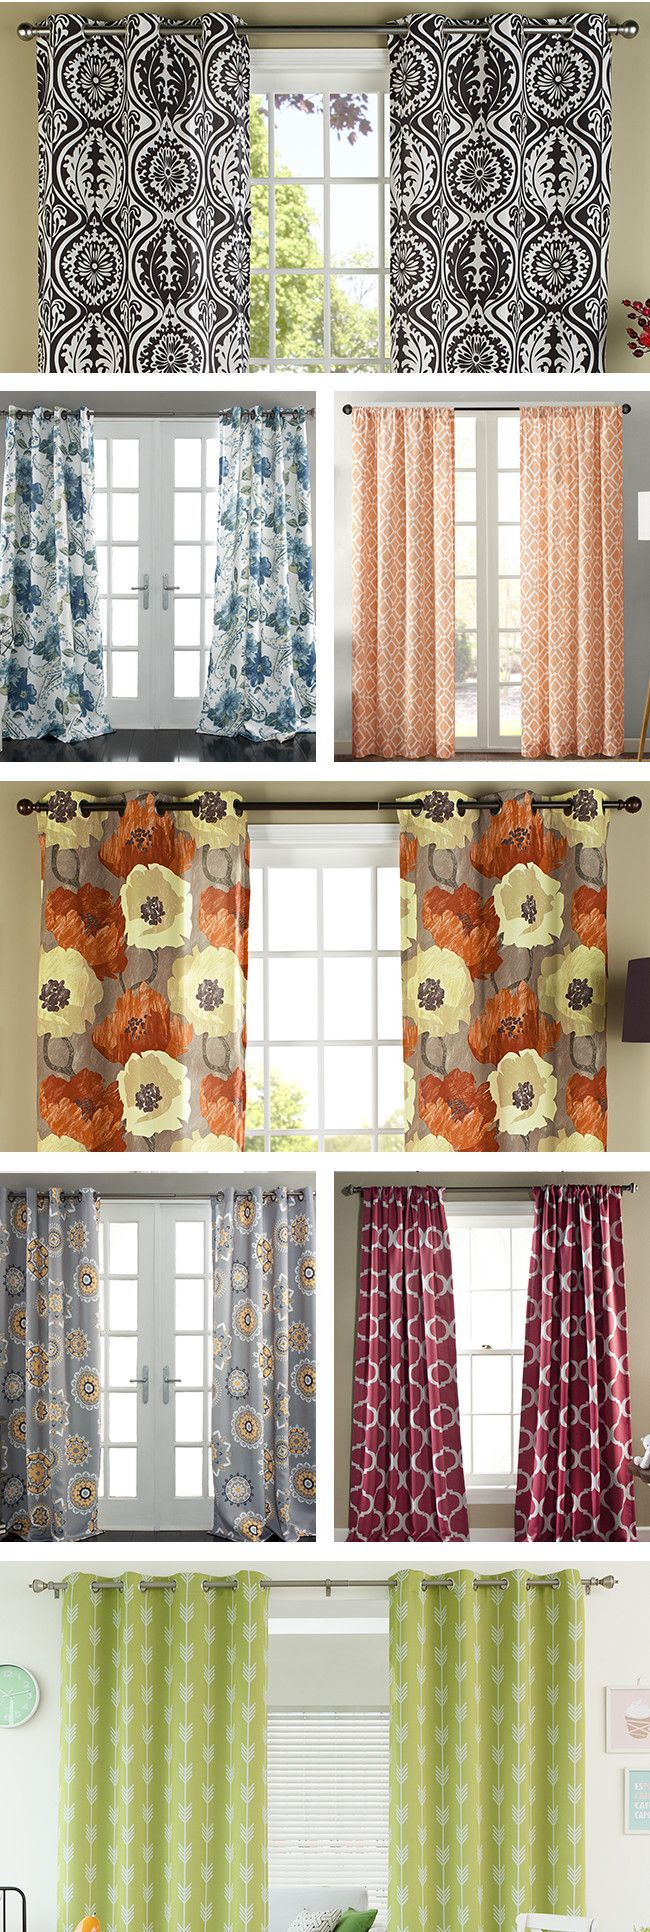 Uncategorized/birch tree fabric window panels/all products home decor window treatments curtains - Treat Your Windows To An Upgrade With Patterned Curtains Vertical Stripes Make Windows Appear Taller